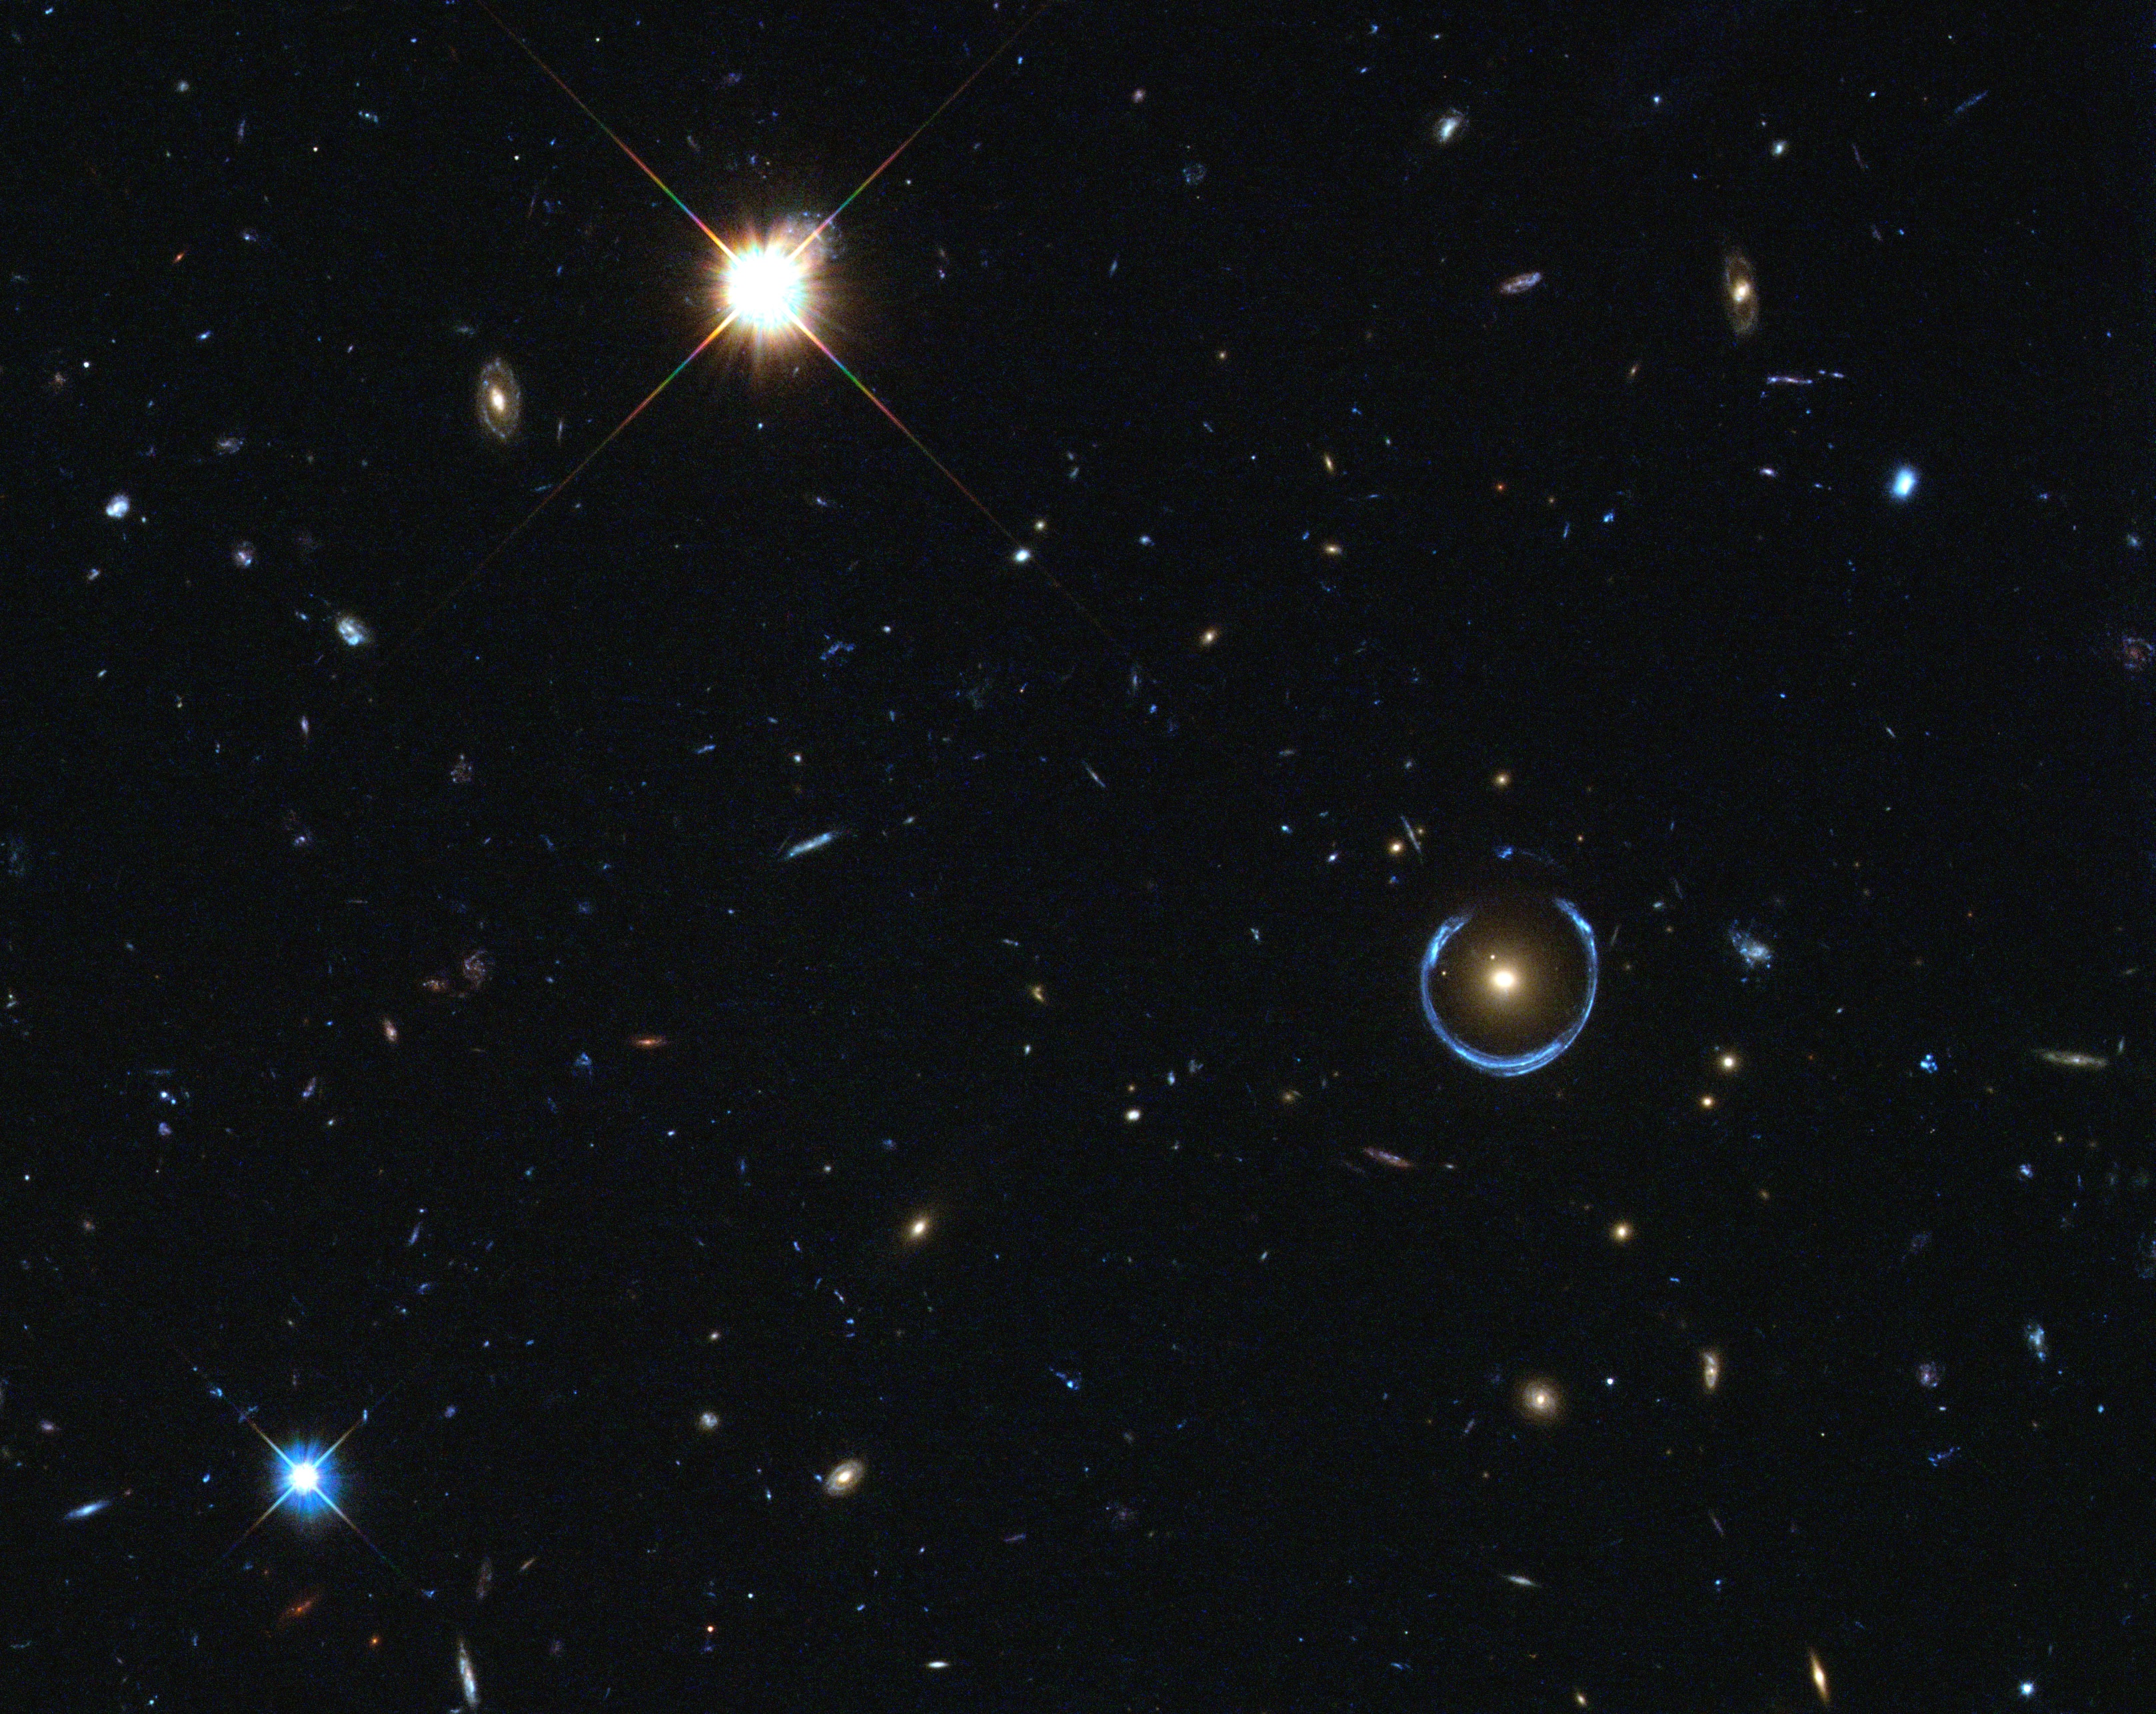 Why doesn't dark matter obscure light?